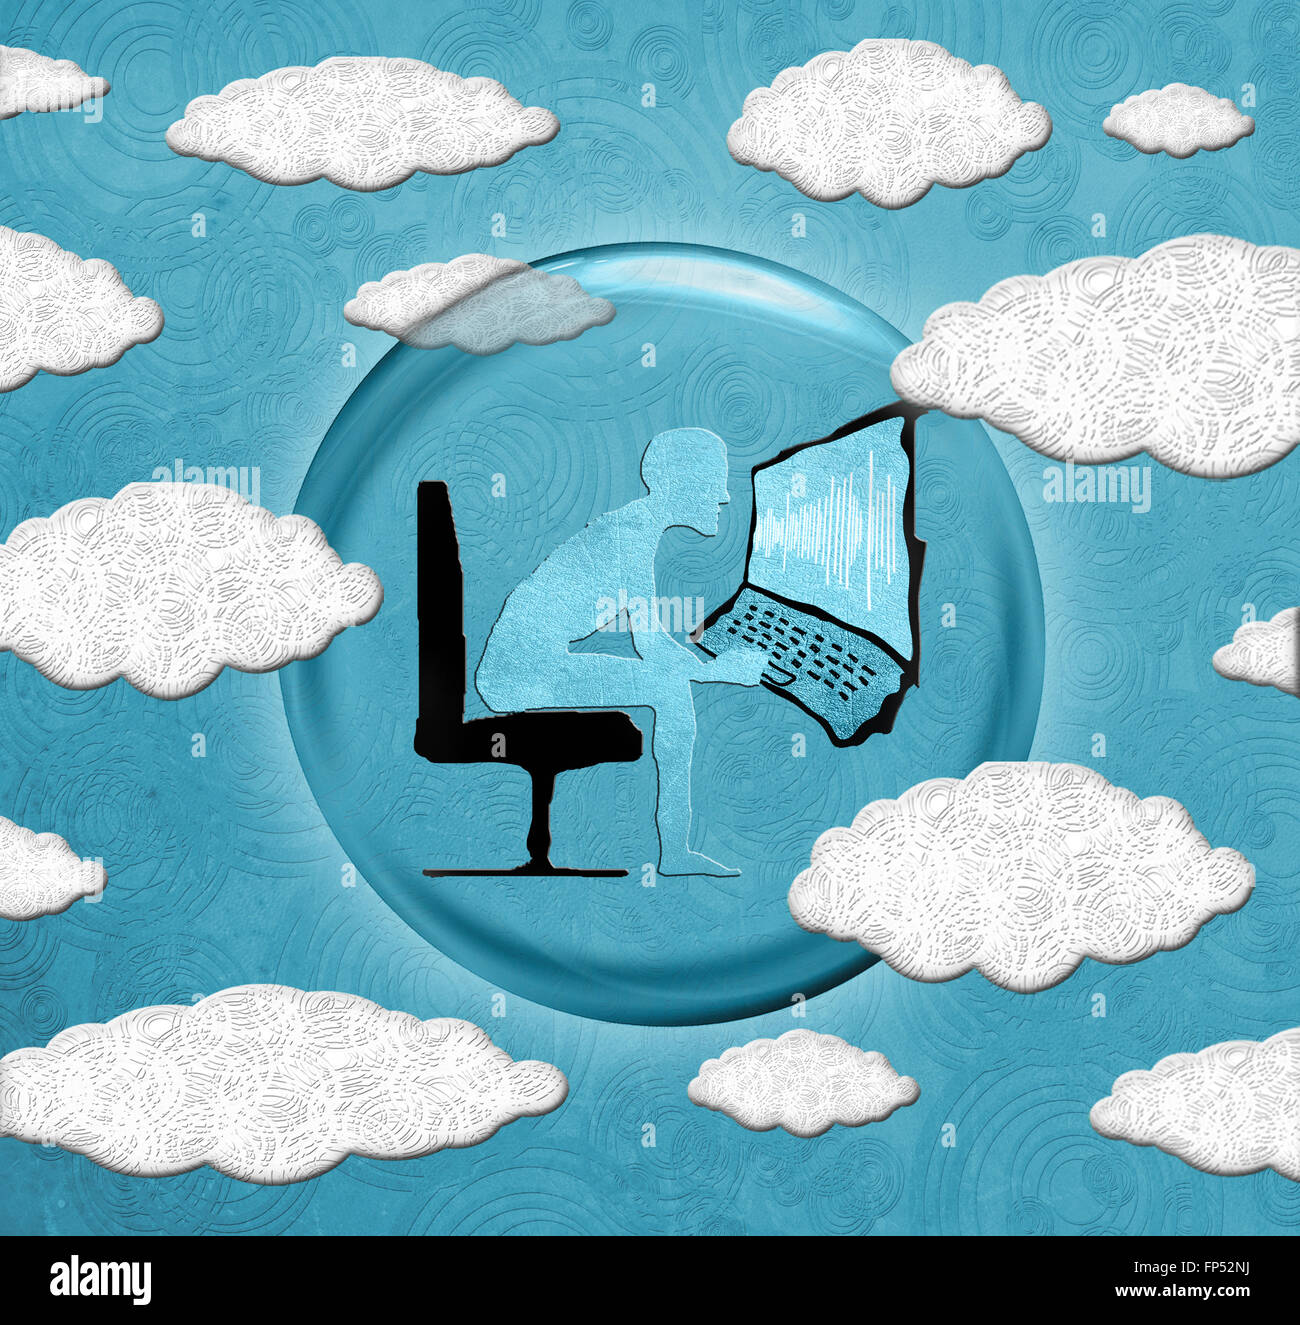 Cloud computing concept illustration numérique Photo Stock